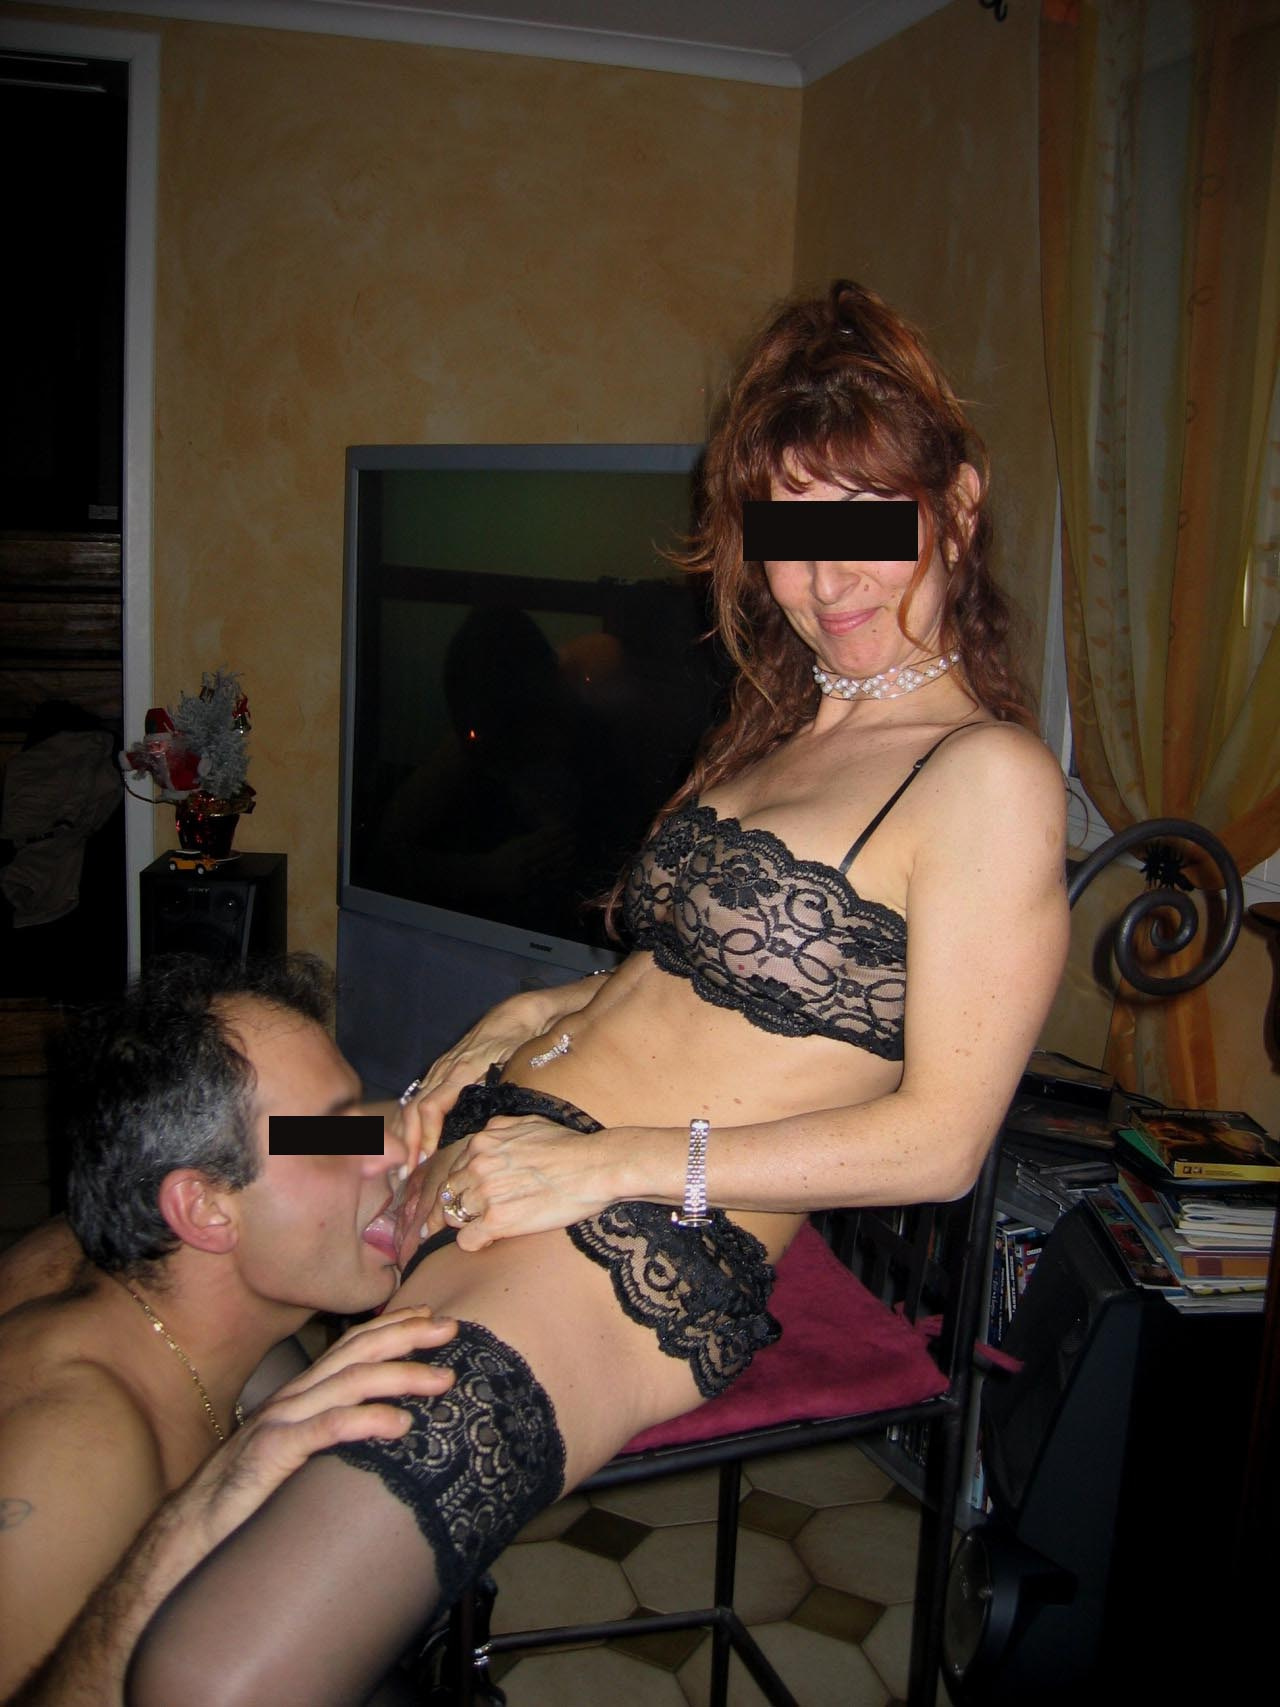 Soiree libertine entre couples matures - 1 part 9